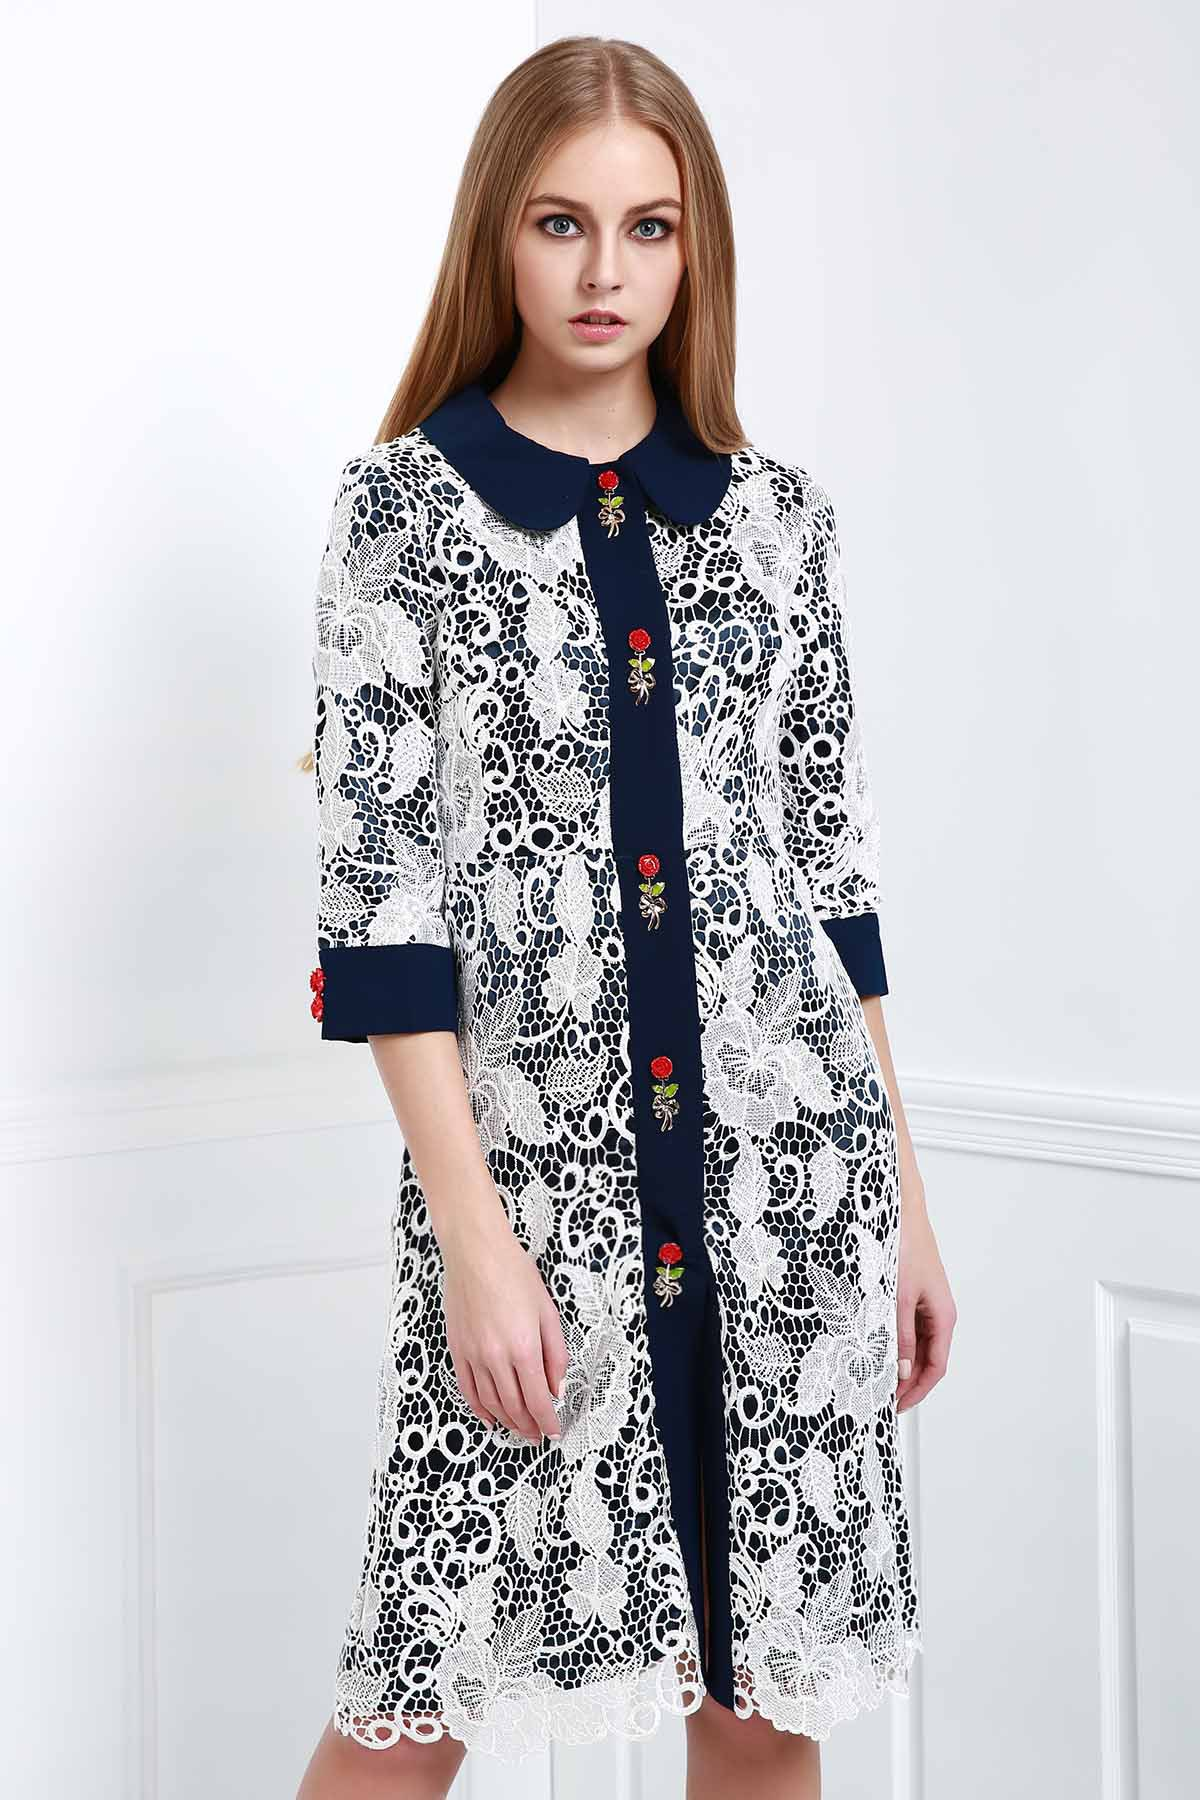 Turn Down Collar Short Sleeve Voile Floral Dress